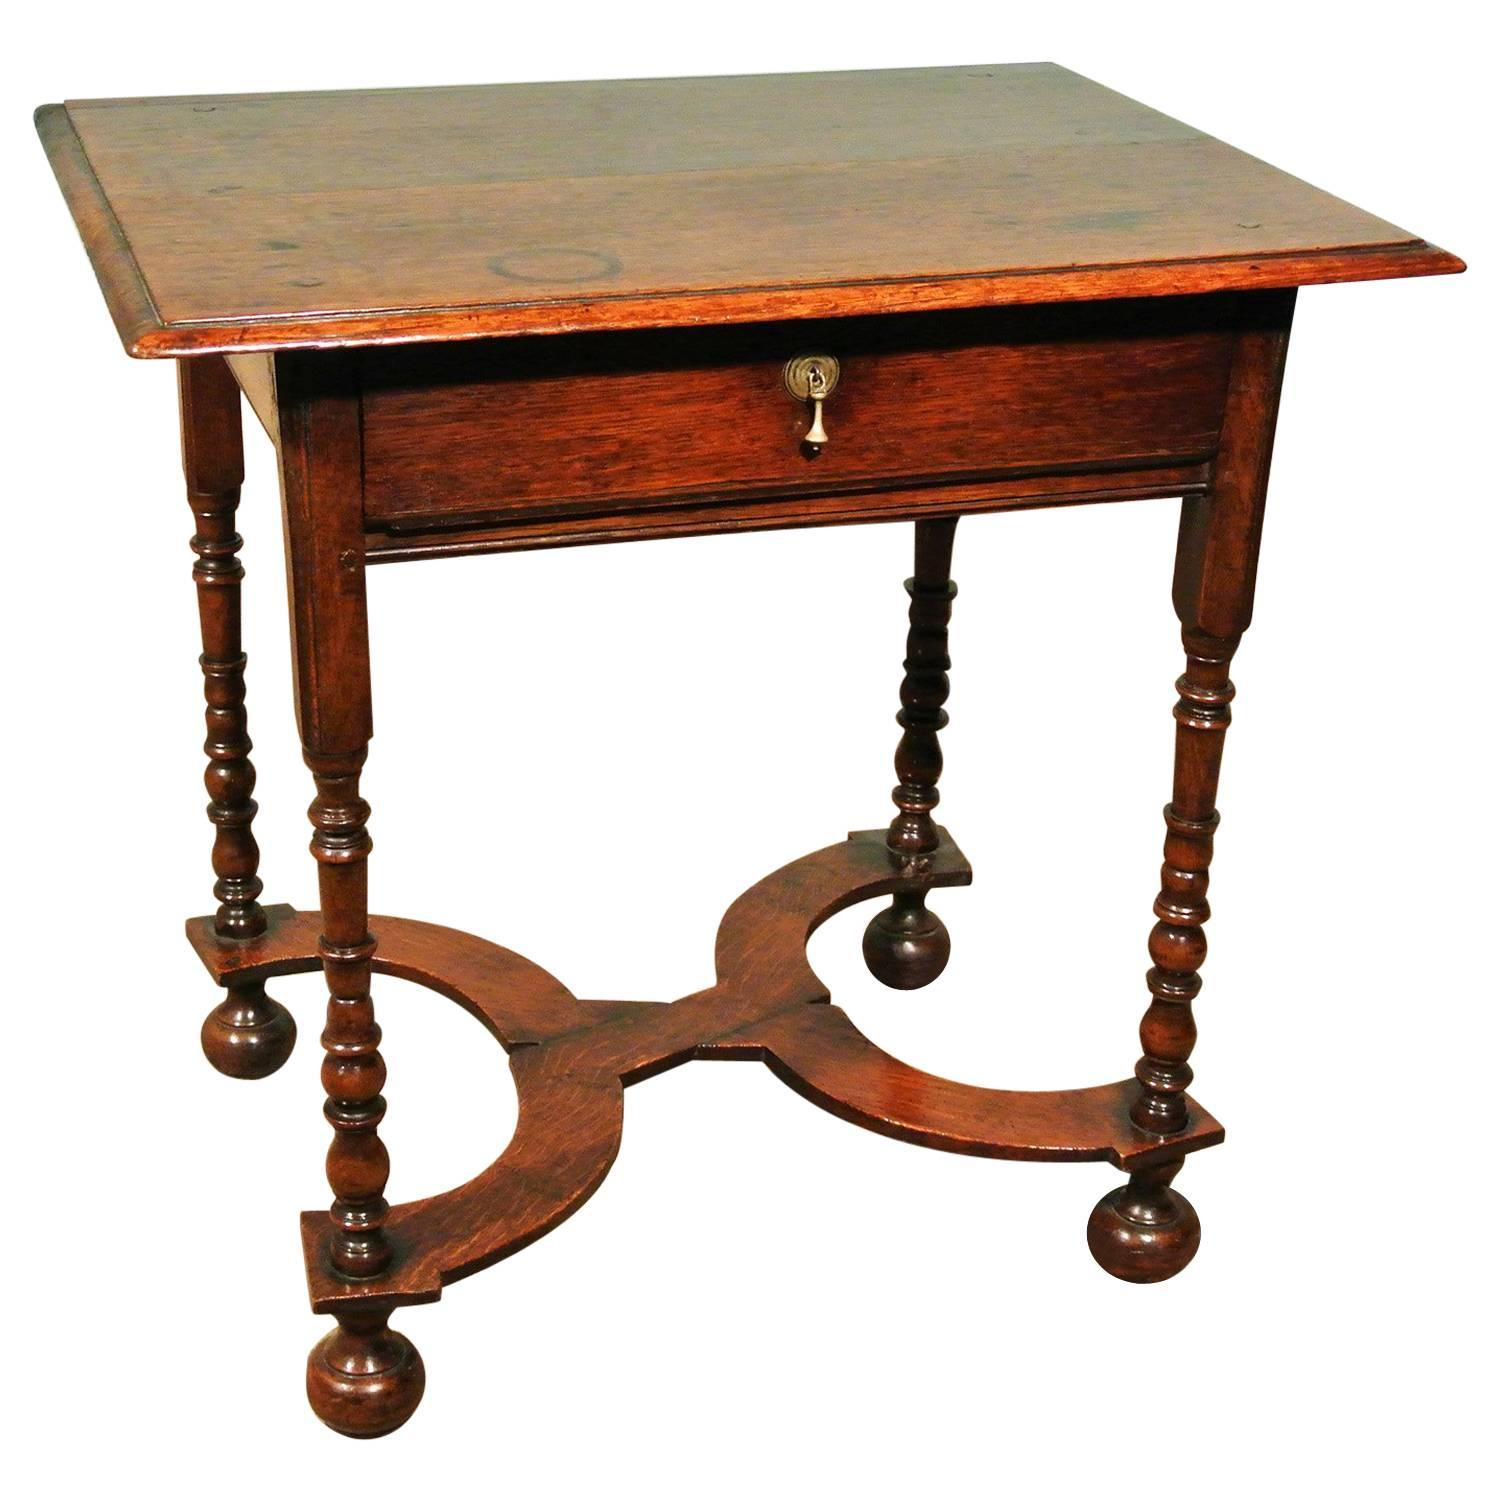 Small Queen Anne Oak Lowboy, Circa 1710